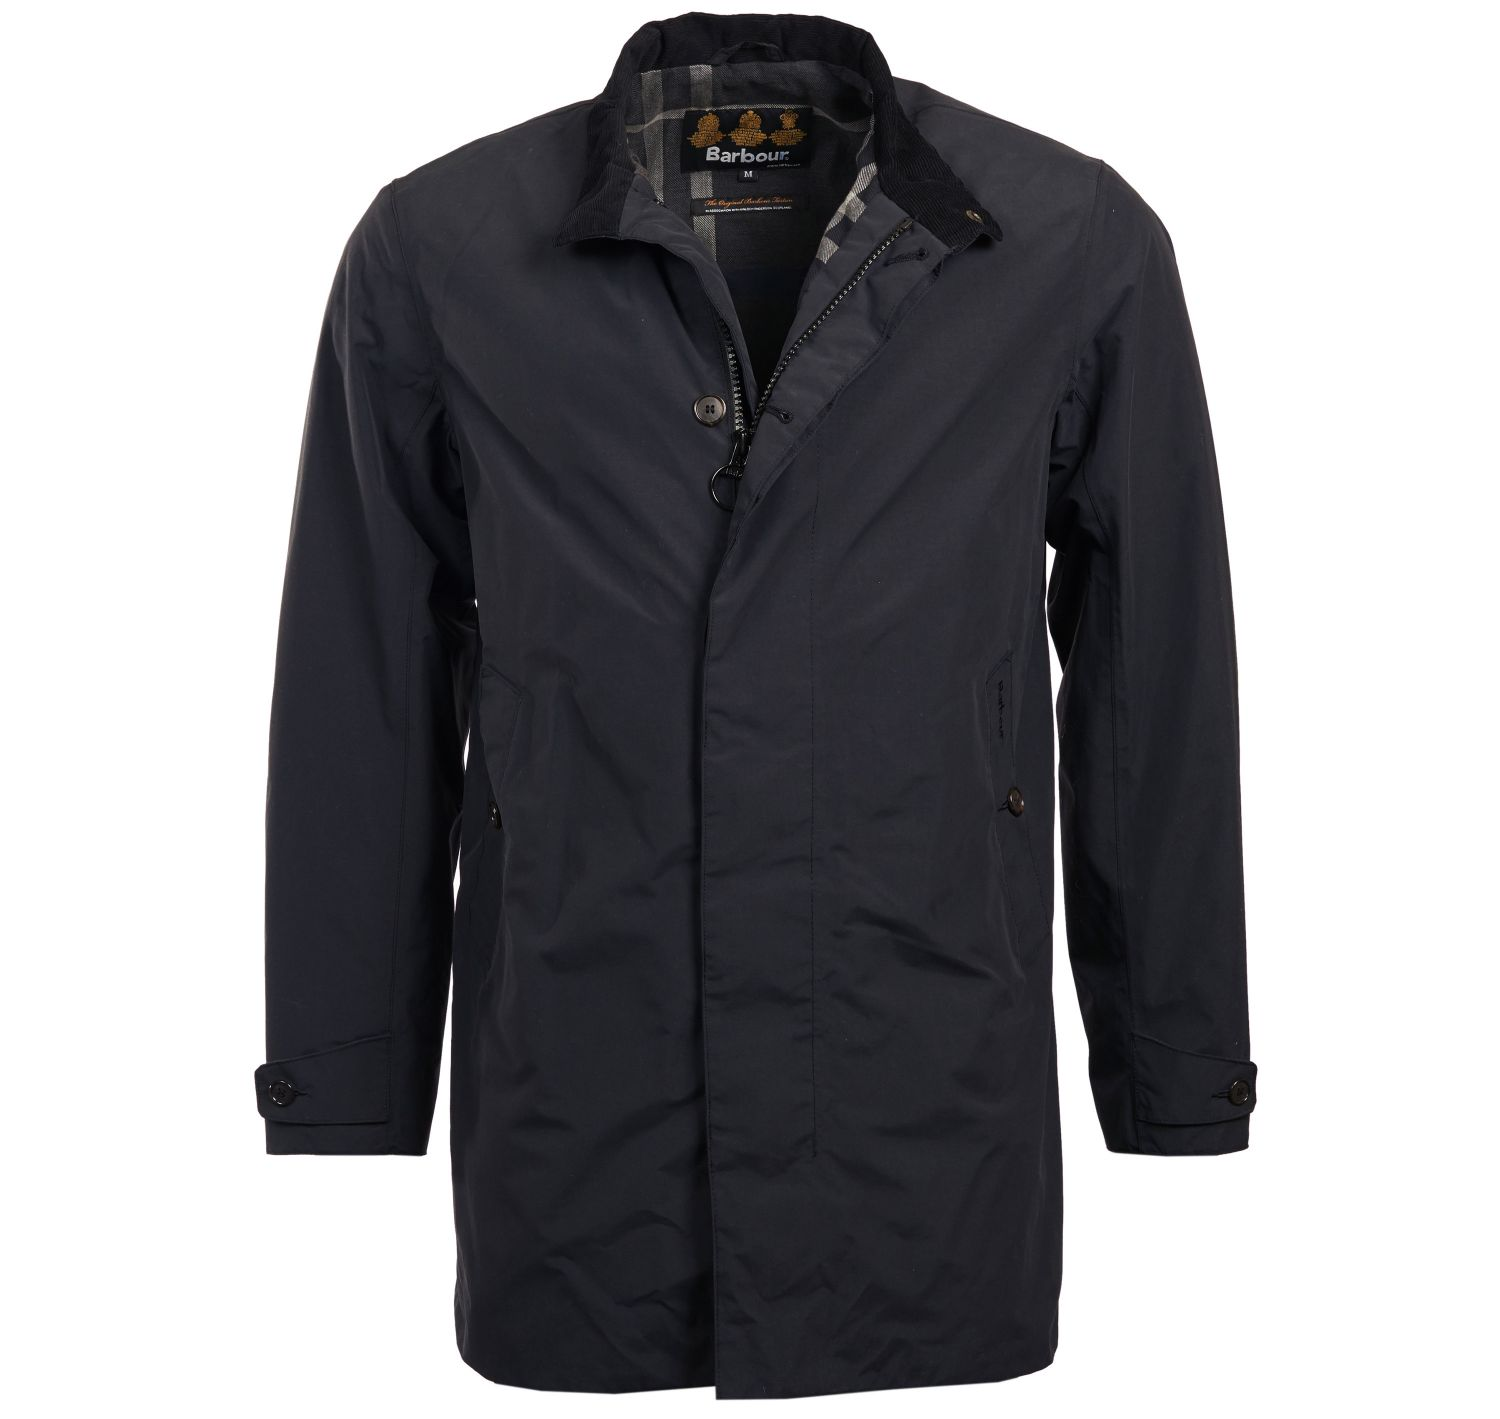 Barbour Golspie Waterproof Breathable Jacket Black